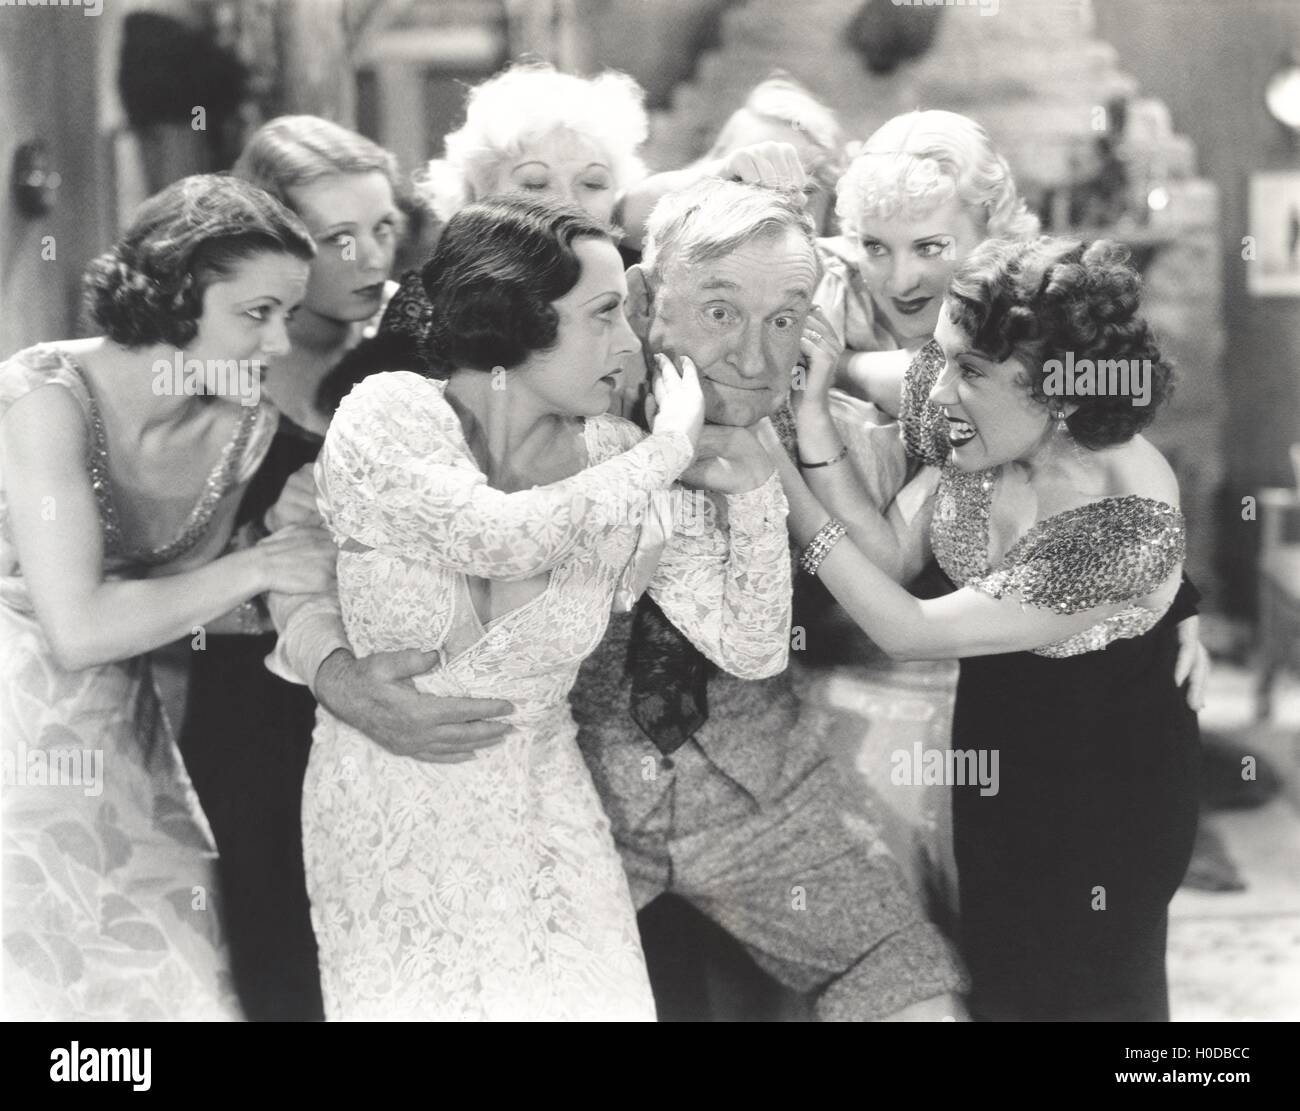 Elderly man surrounded by flirtatous young women - Stock Image